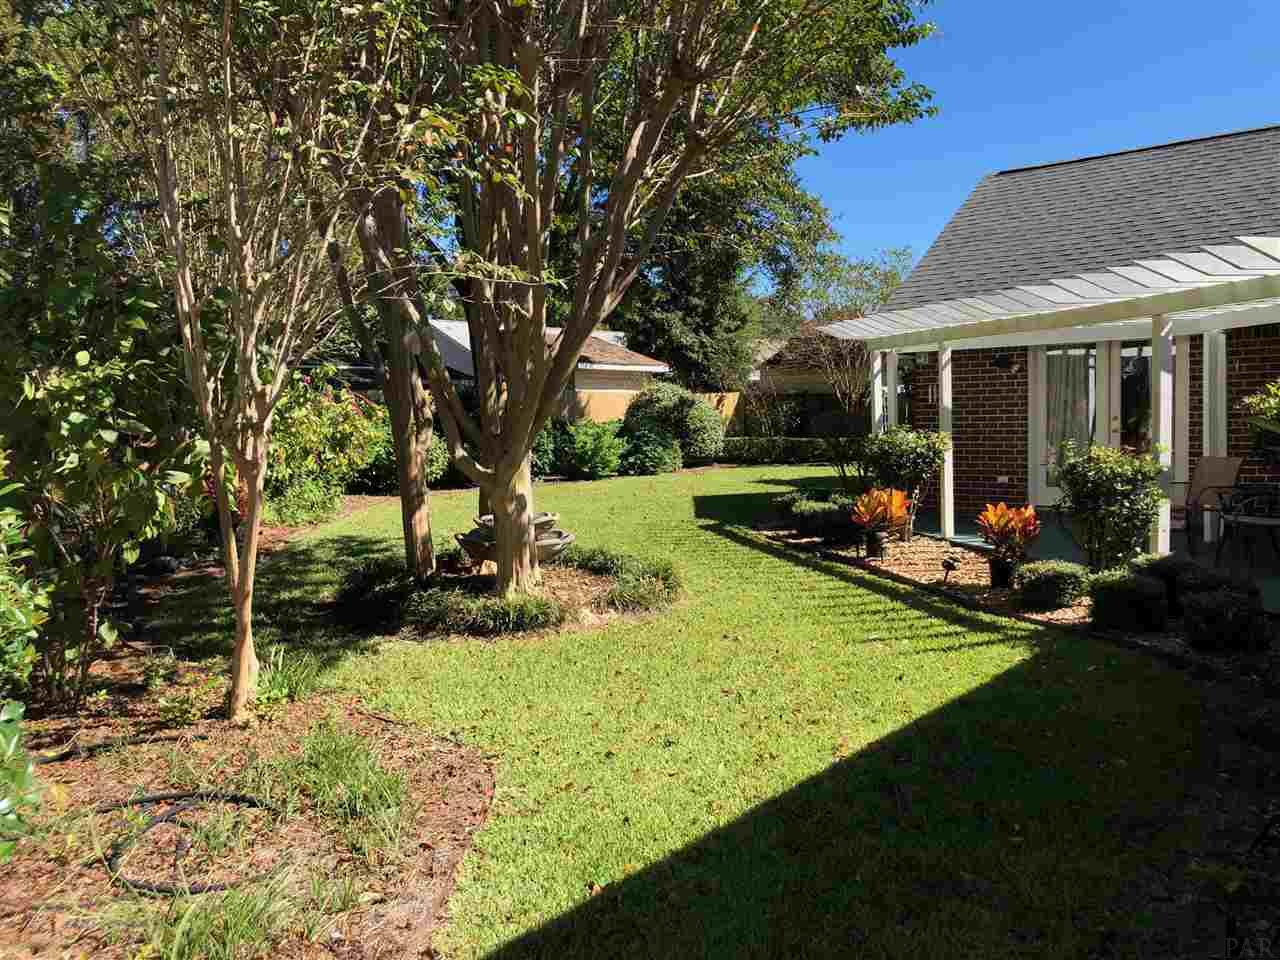 1712 Donegal Dr, Cantonment, FL 32533